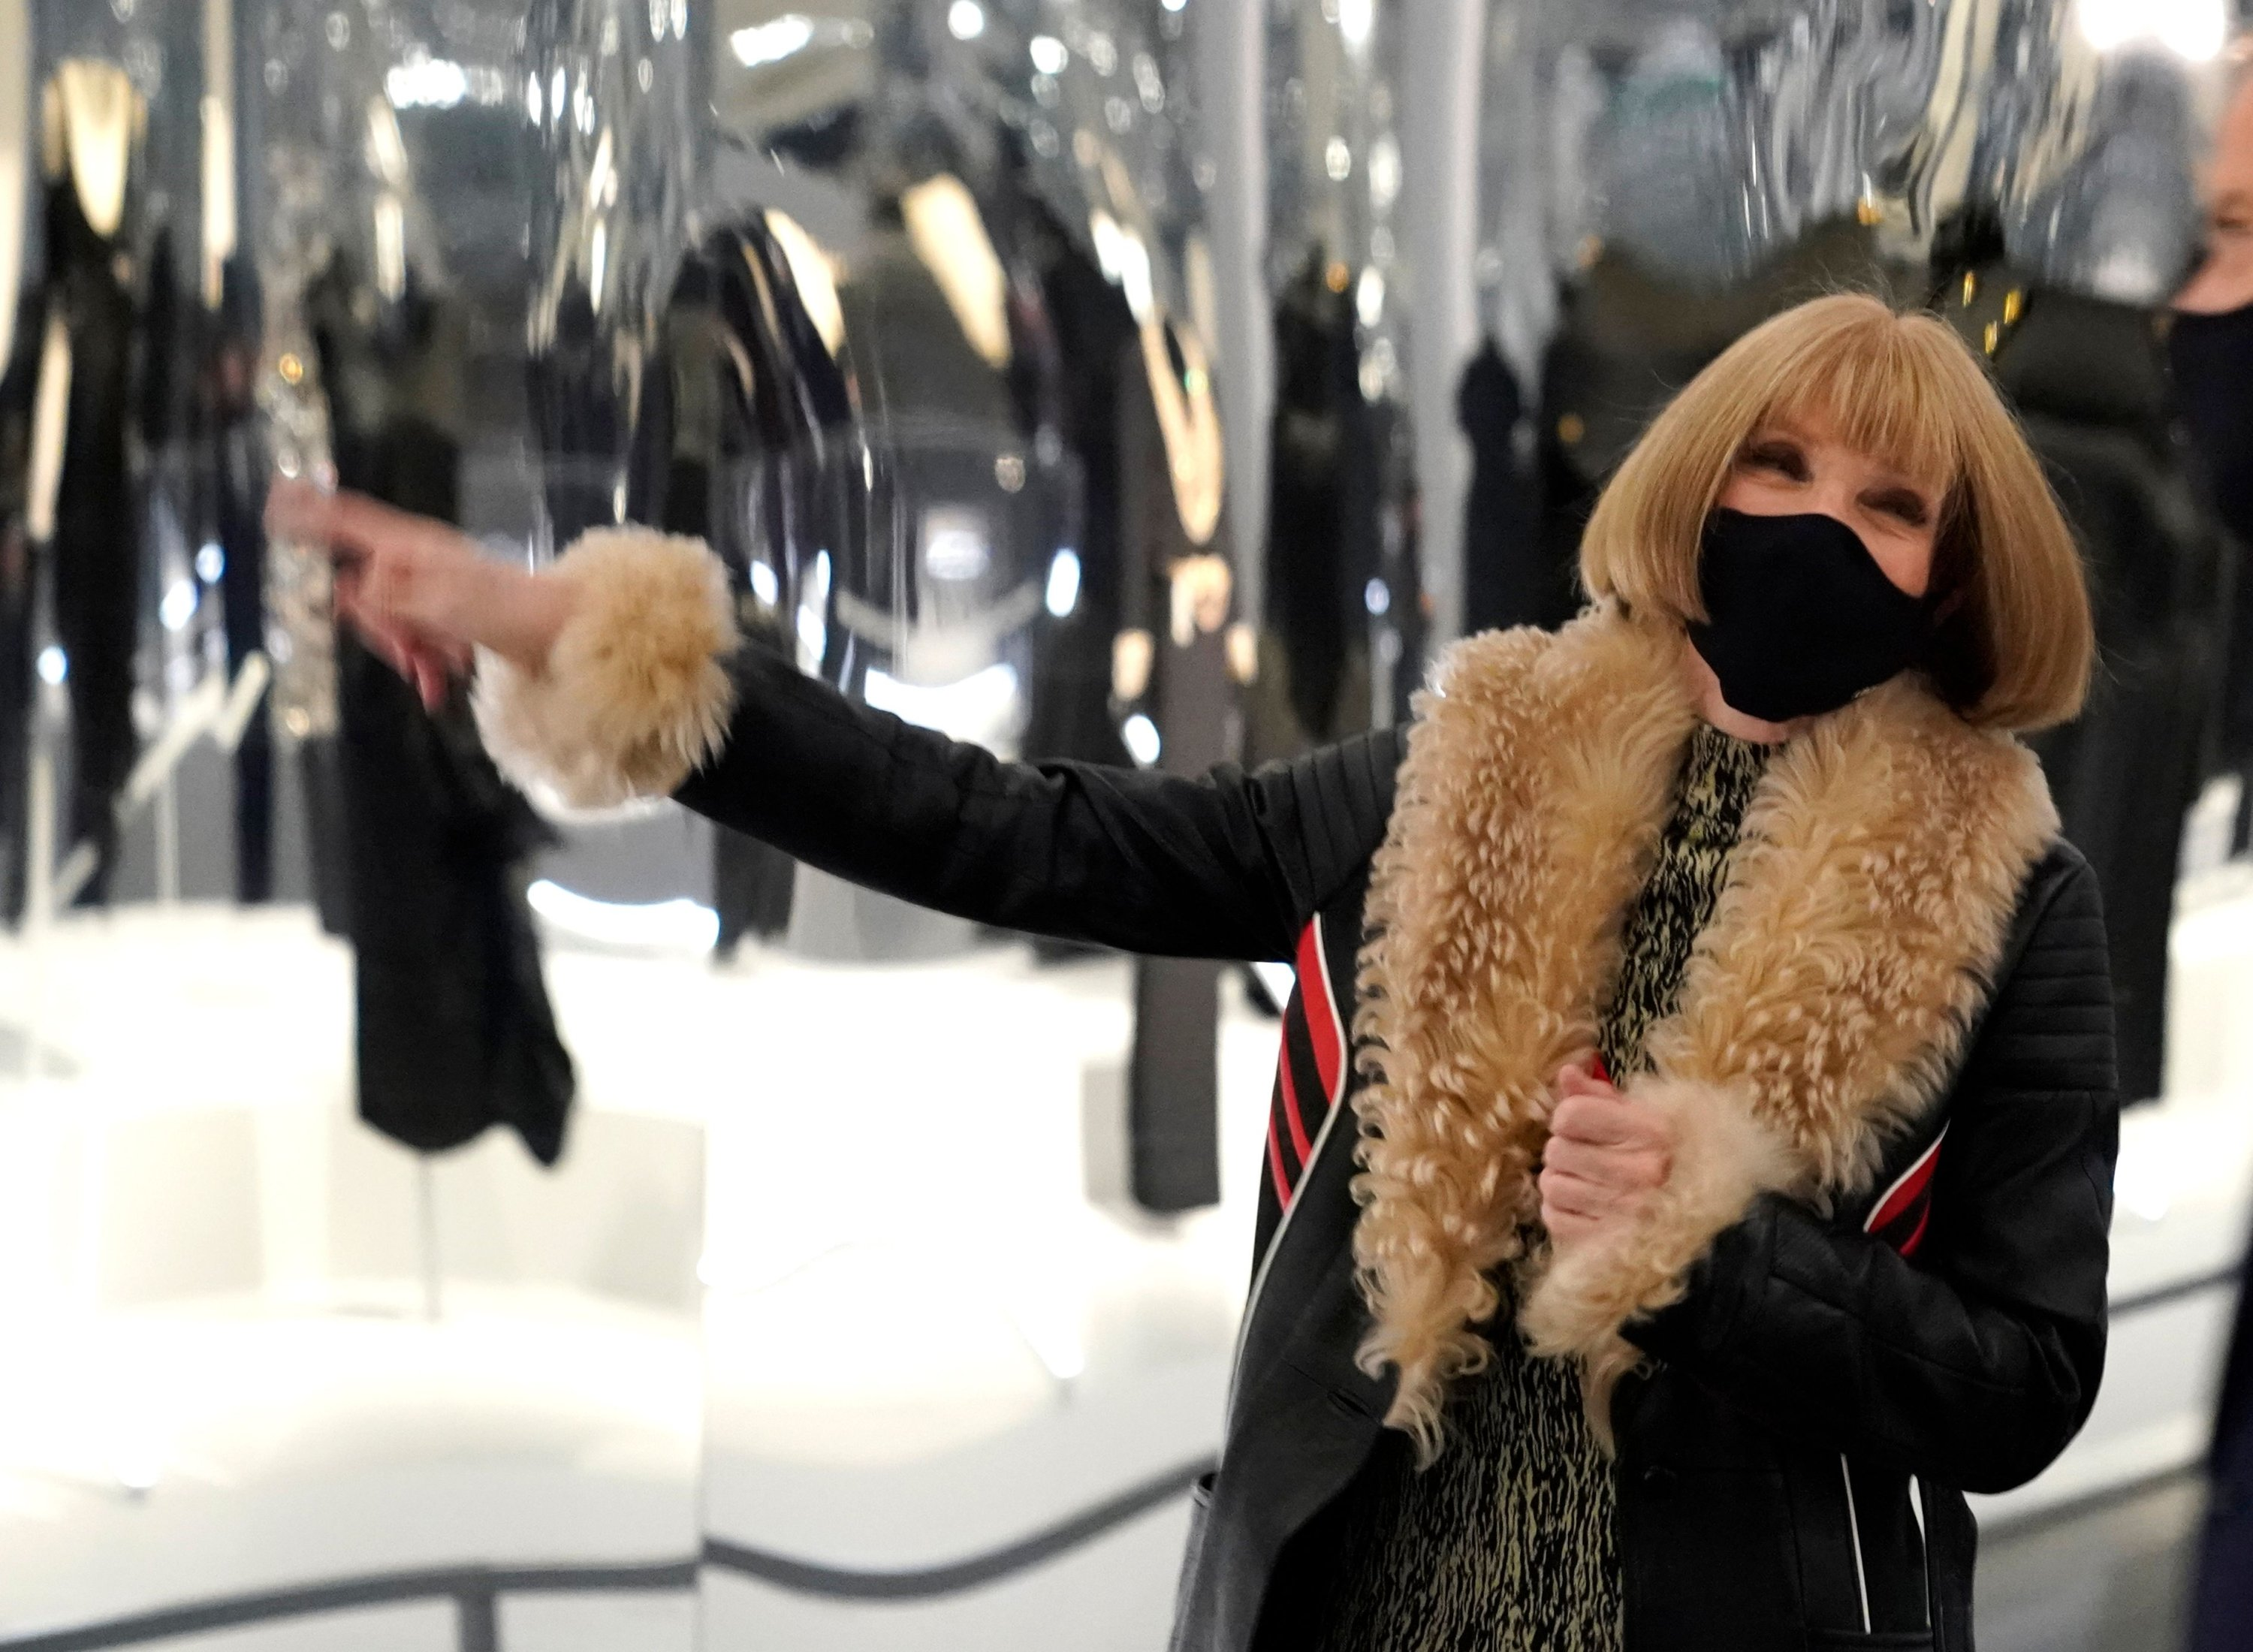 Anna Wintour, editor-in-chief of American Vogue, attends the press preview for the The Costume Institute's exhibition,